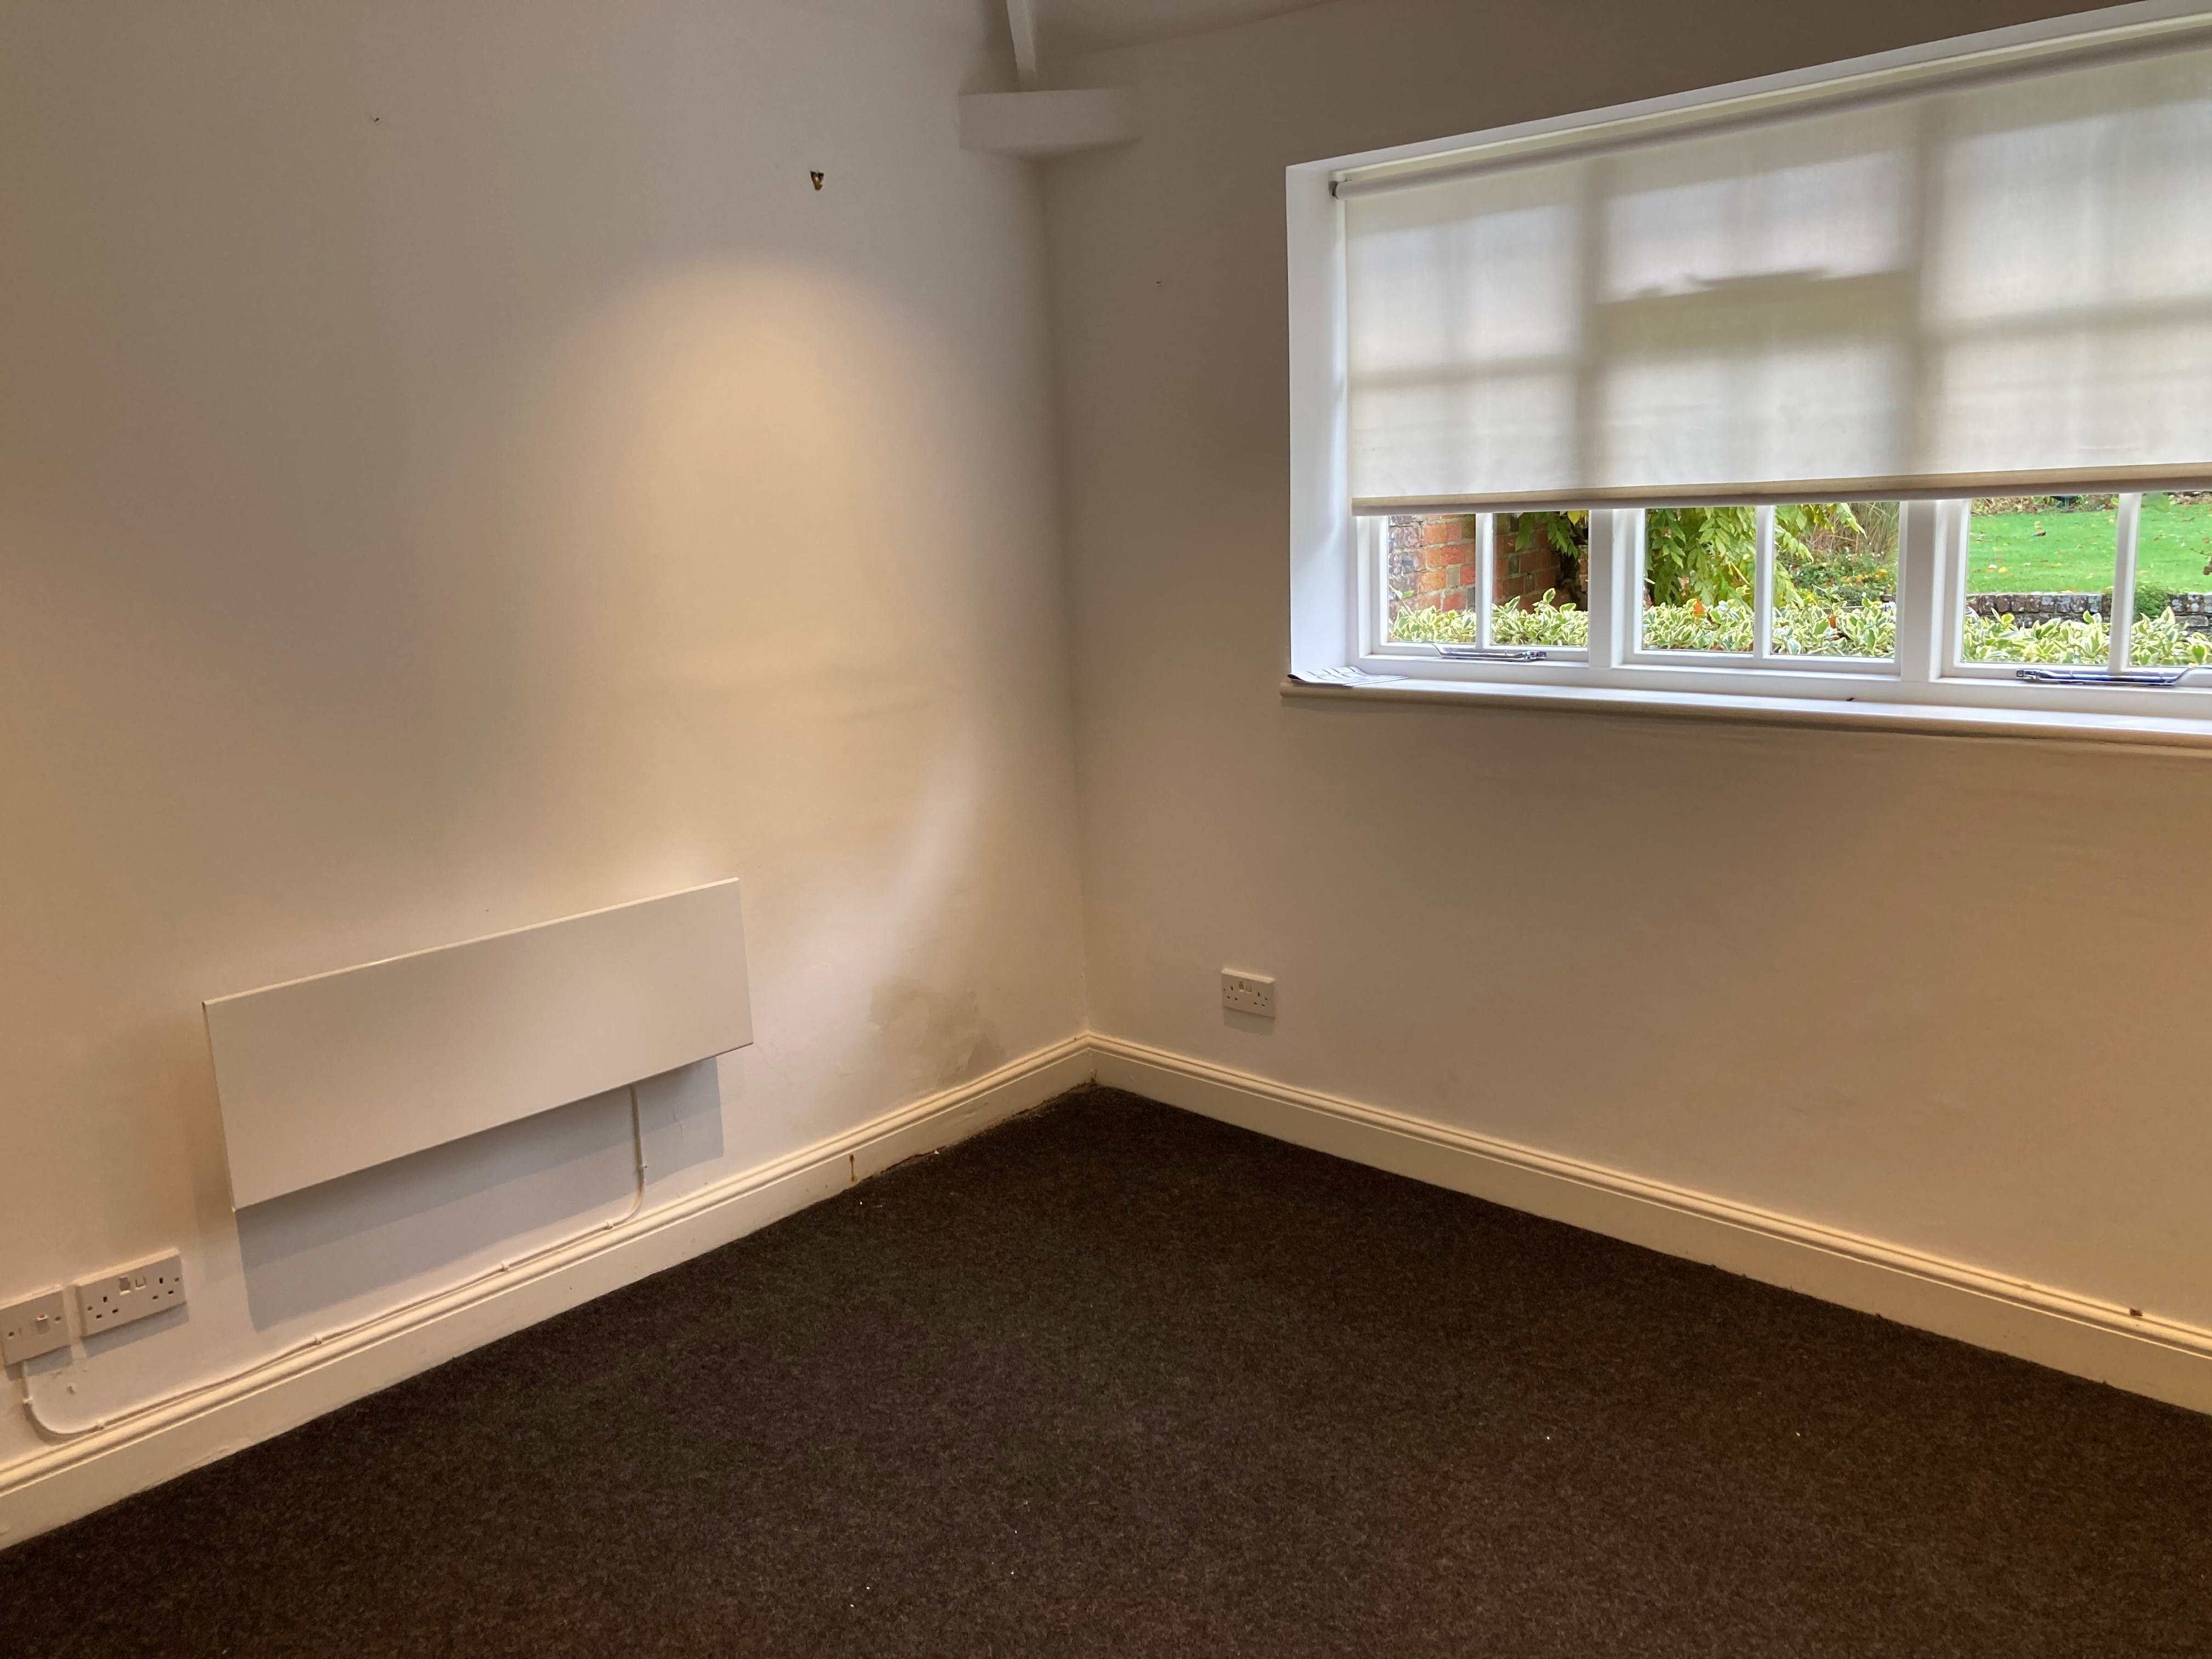 Studio 6, The Old Parsonage, Farnham, Offices To Let - Photo 1.jpg